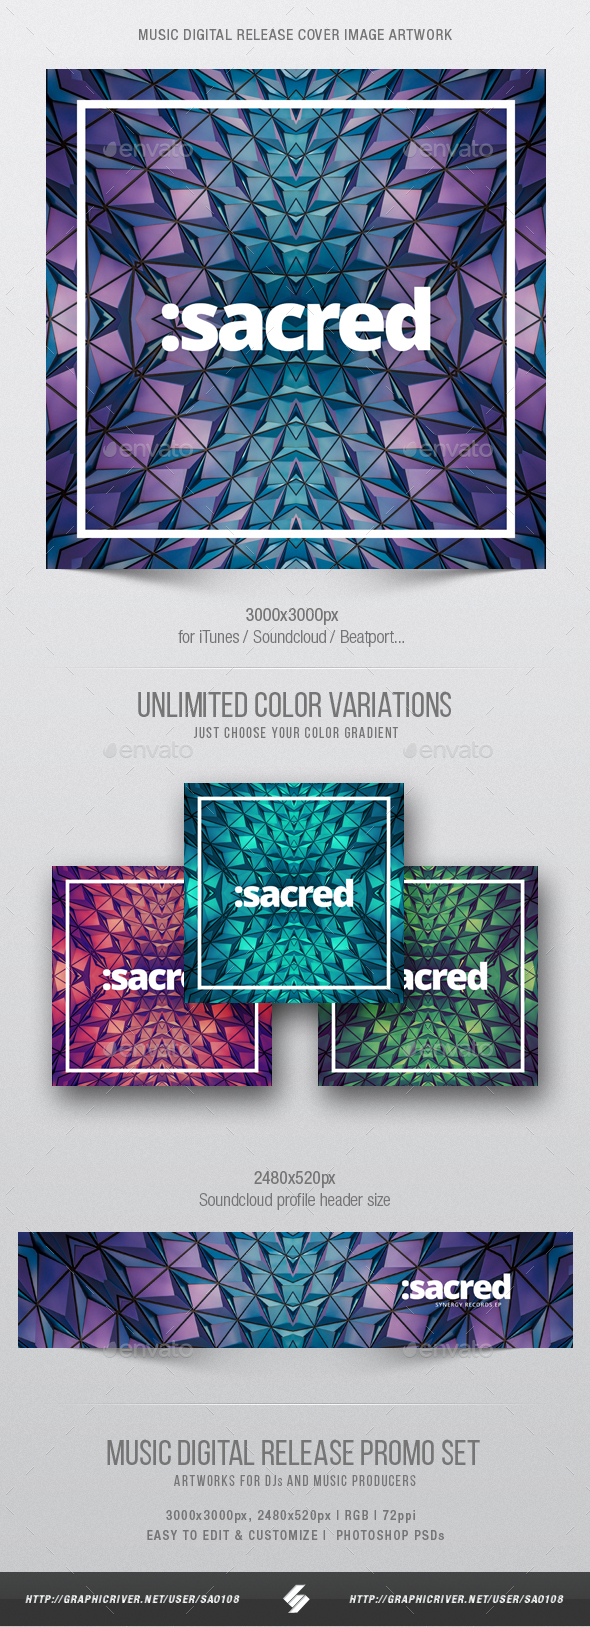 Sacred - Music Cover Image Artwork Template - Miscellaneous Social Media